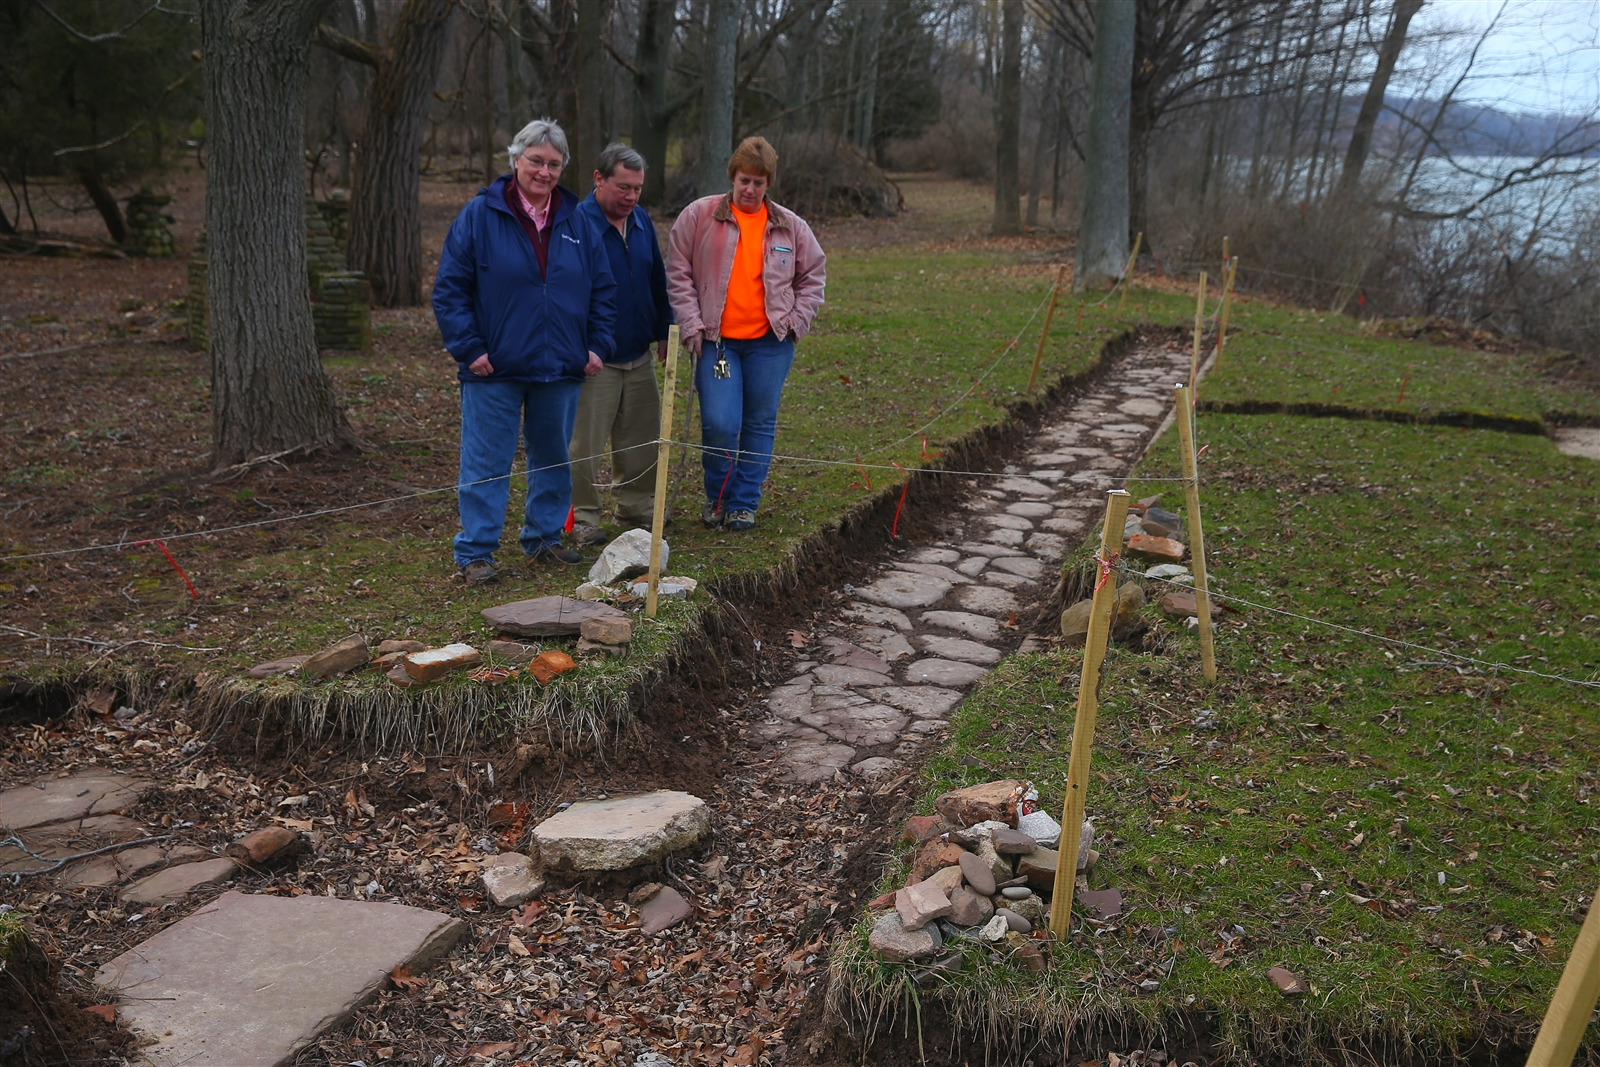 Golden Hill State Park volunteers Mike and Cheryl Wertman, left, stand with Park Manager Renee Campbell at the spot where the Wertmans excavated about a foot of soil to find the original stone path that ran along the lake. The path may have led to the original Drake House, which is gone. Much of the property has already eroded into Lake Ontario, and the losses continue every year.